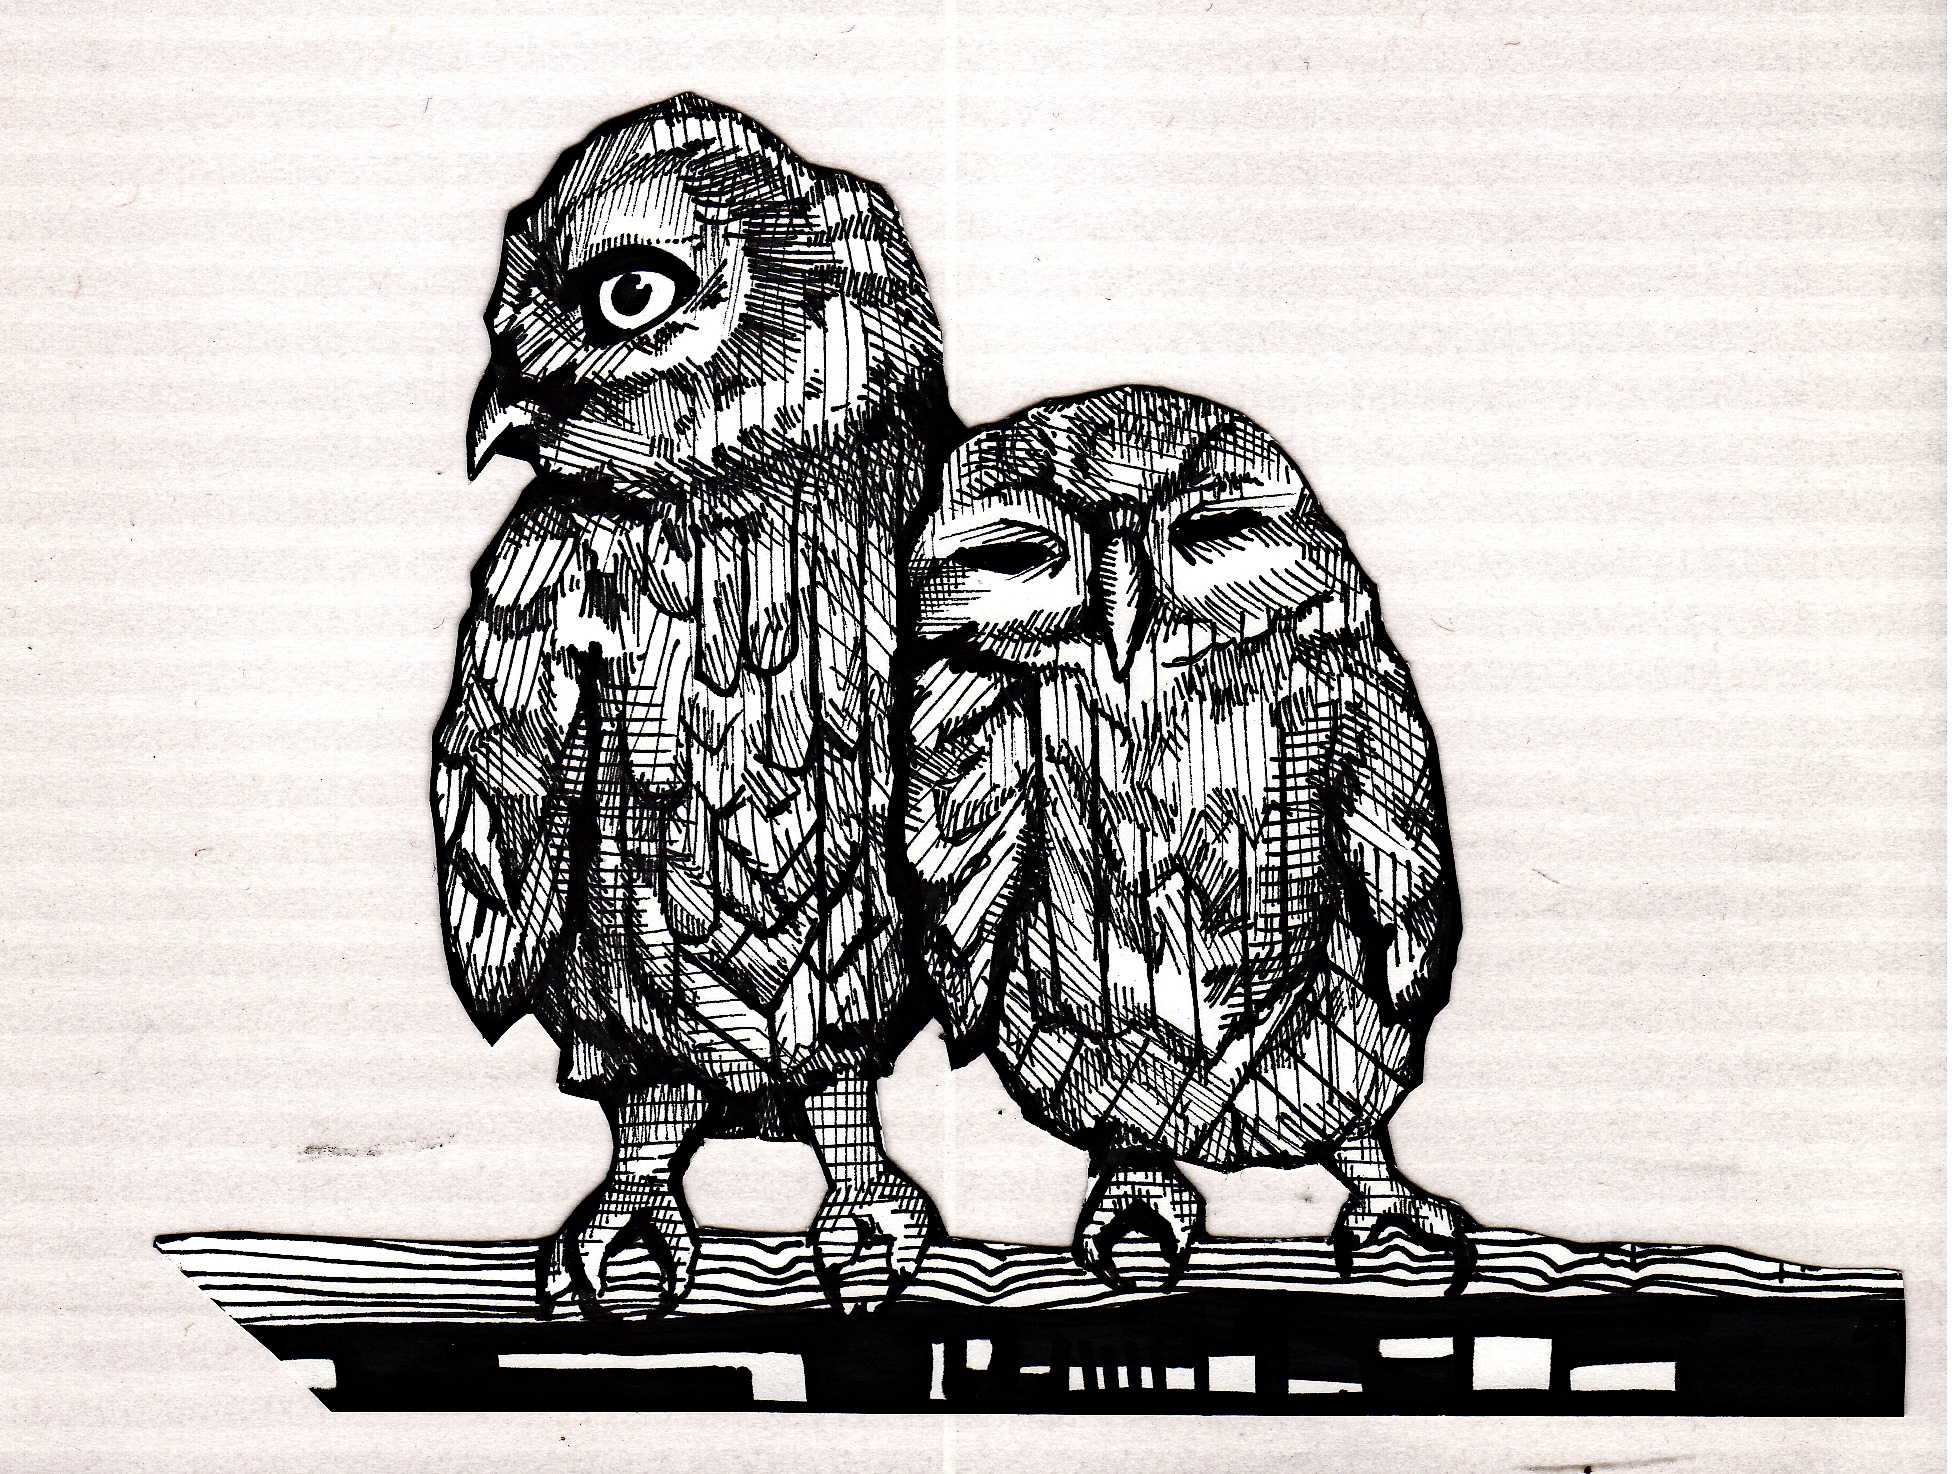 The Owlets